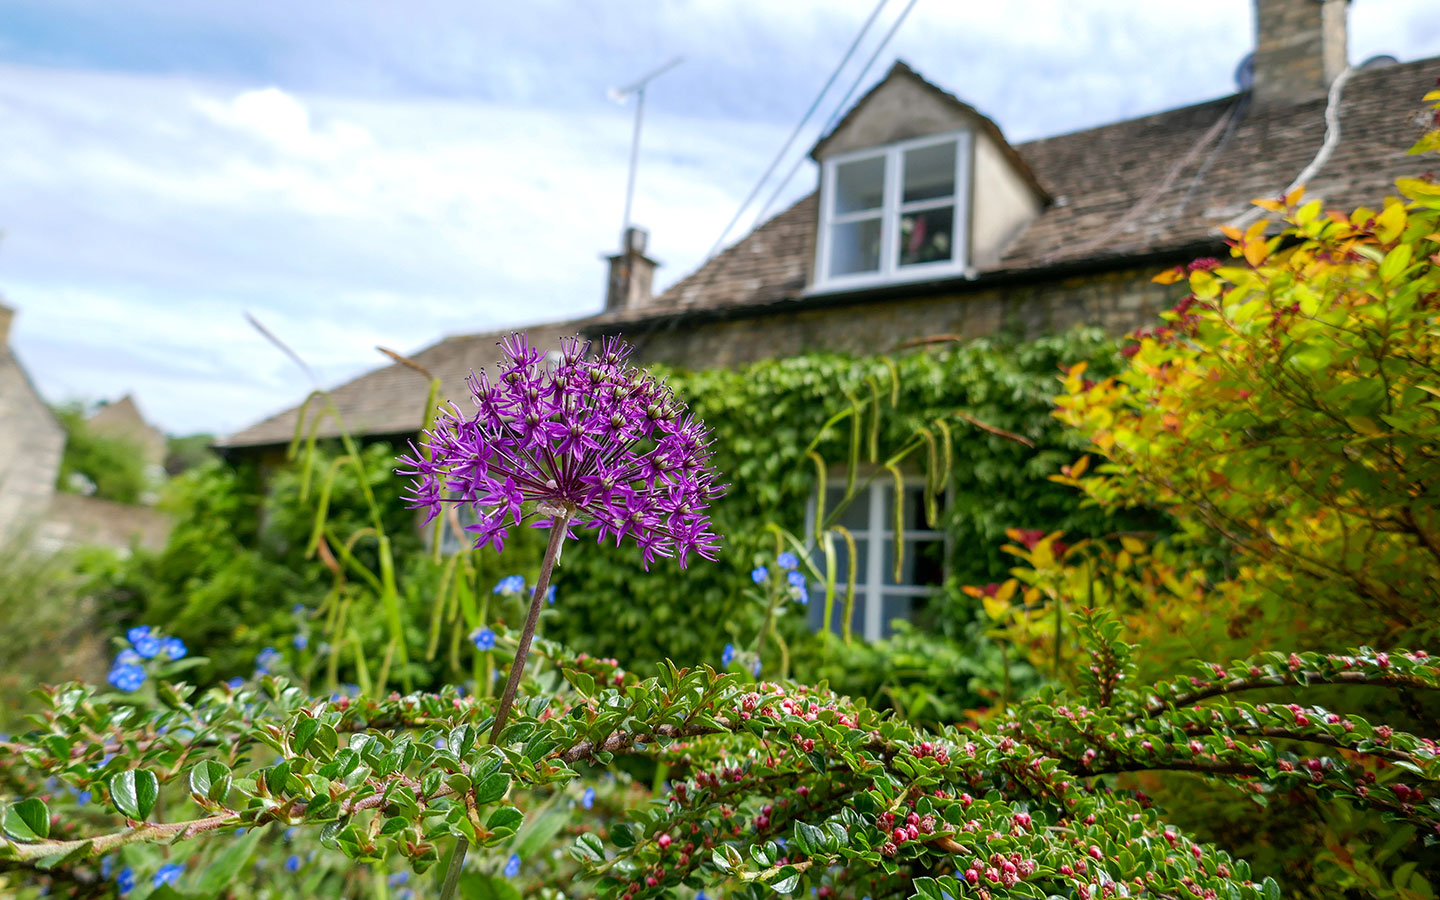 Flower-covered houses on the Chipping Steps in Tetbury